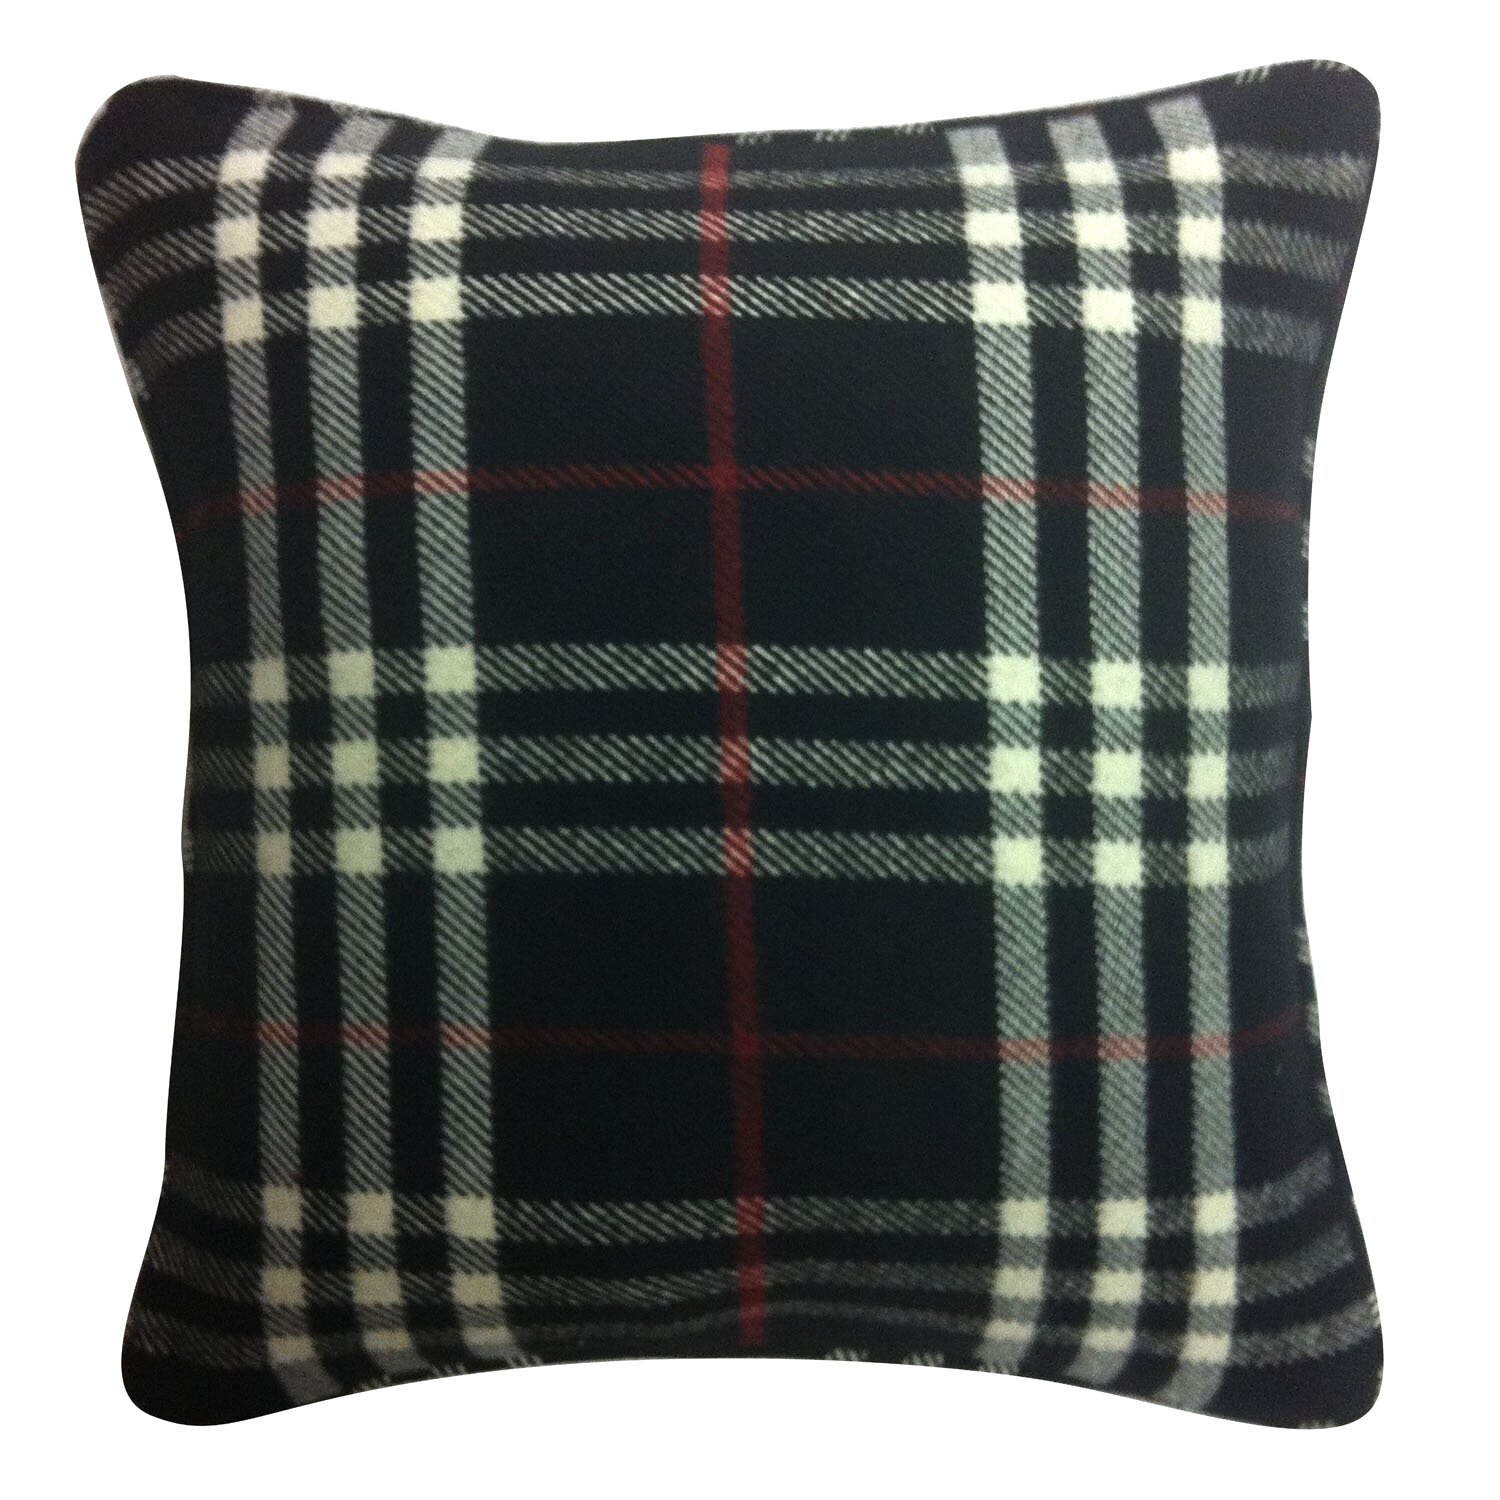 Black Plaid Throw Pillow : Filos Design Black Plaid Throw Pillow Wayfair